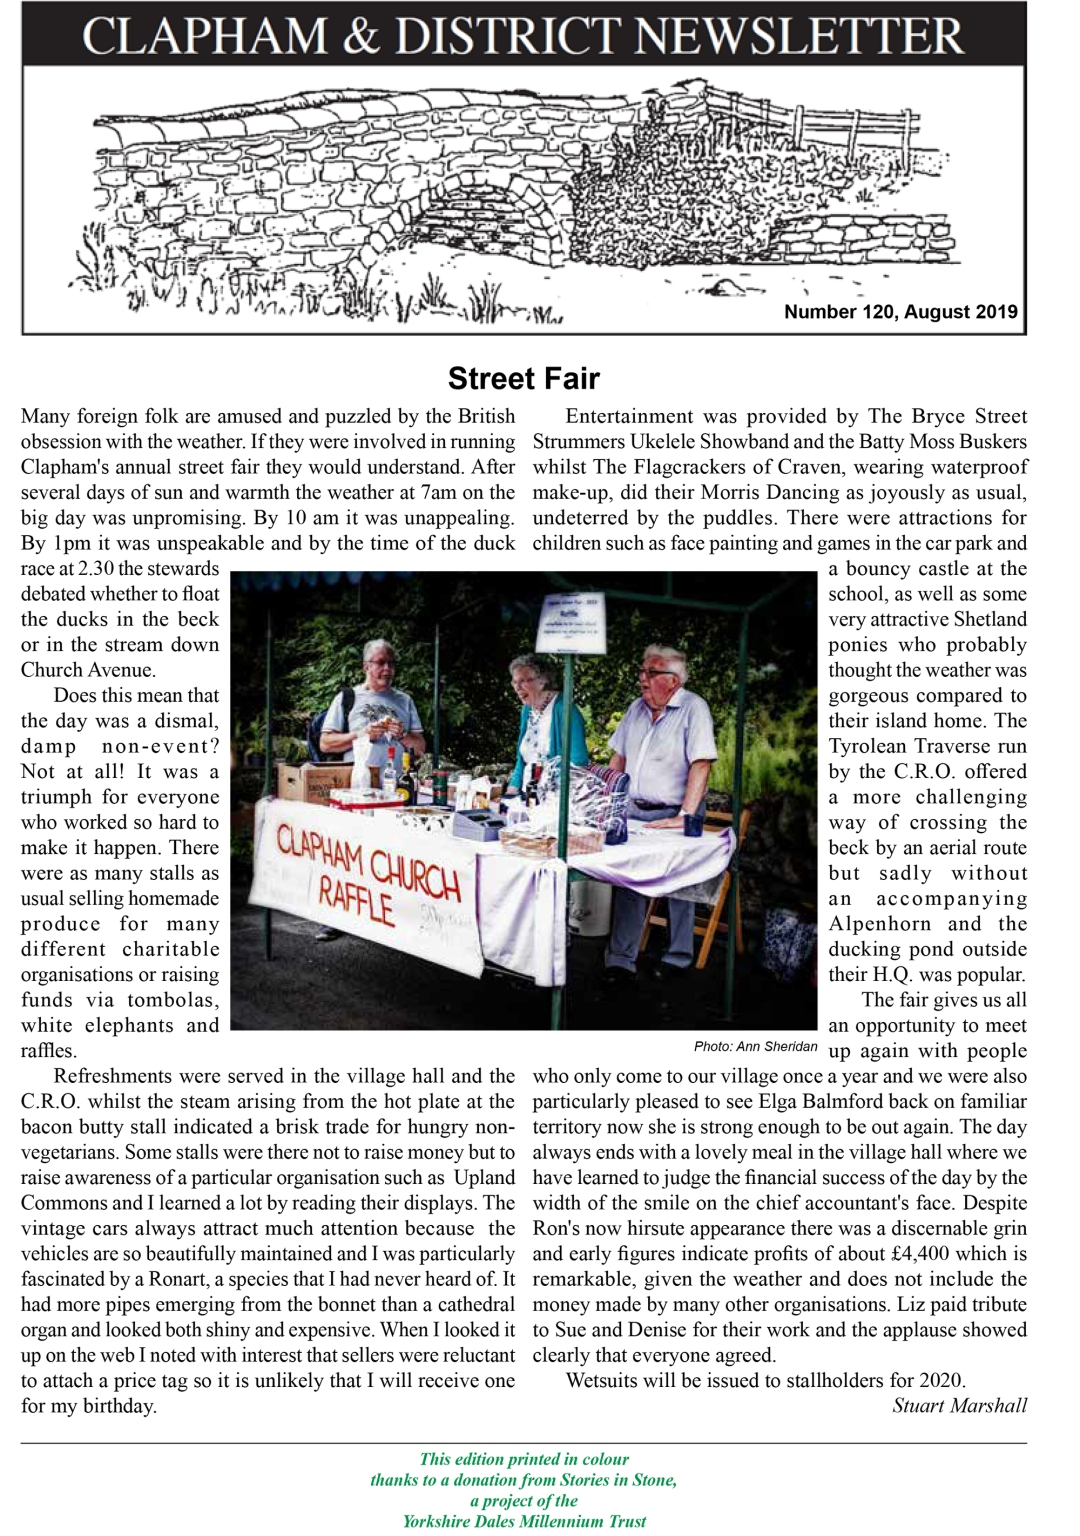 clapham-newsletter-120-august-2019-1